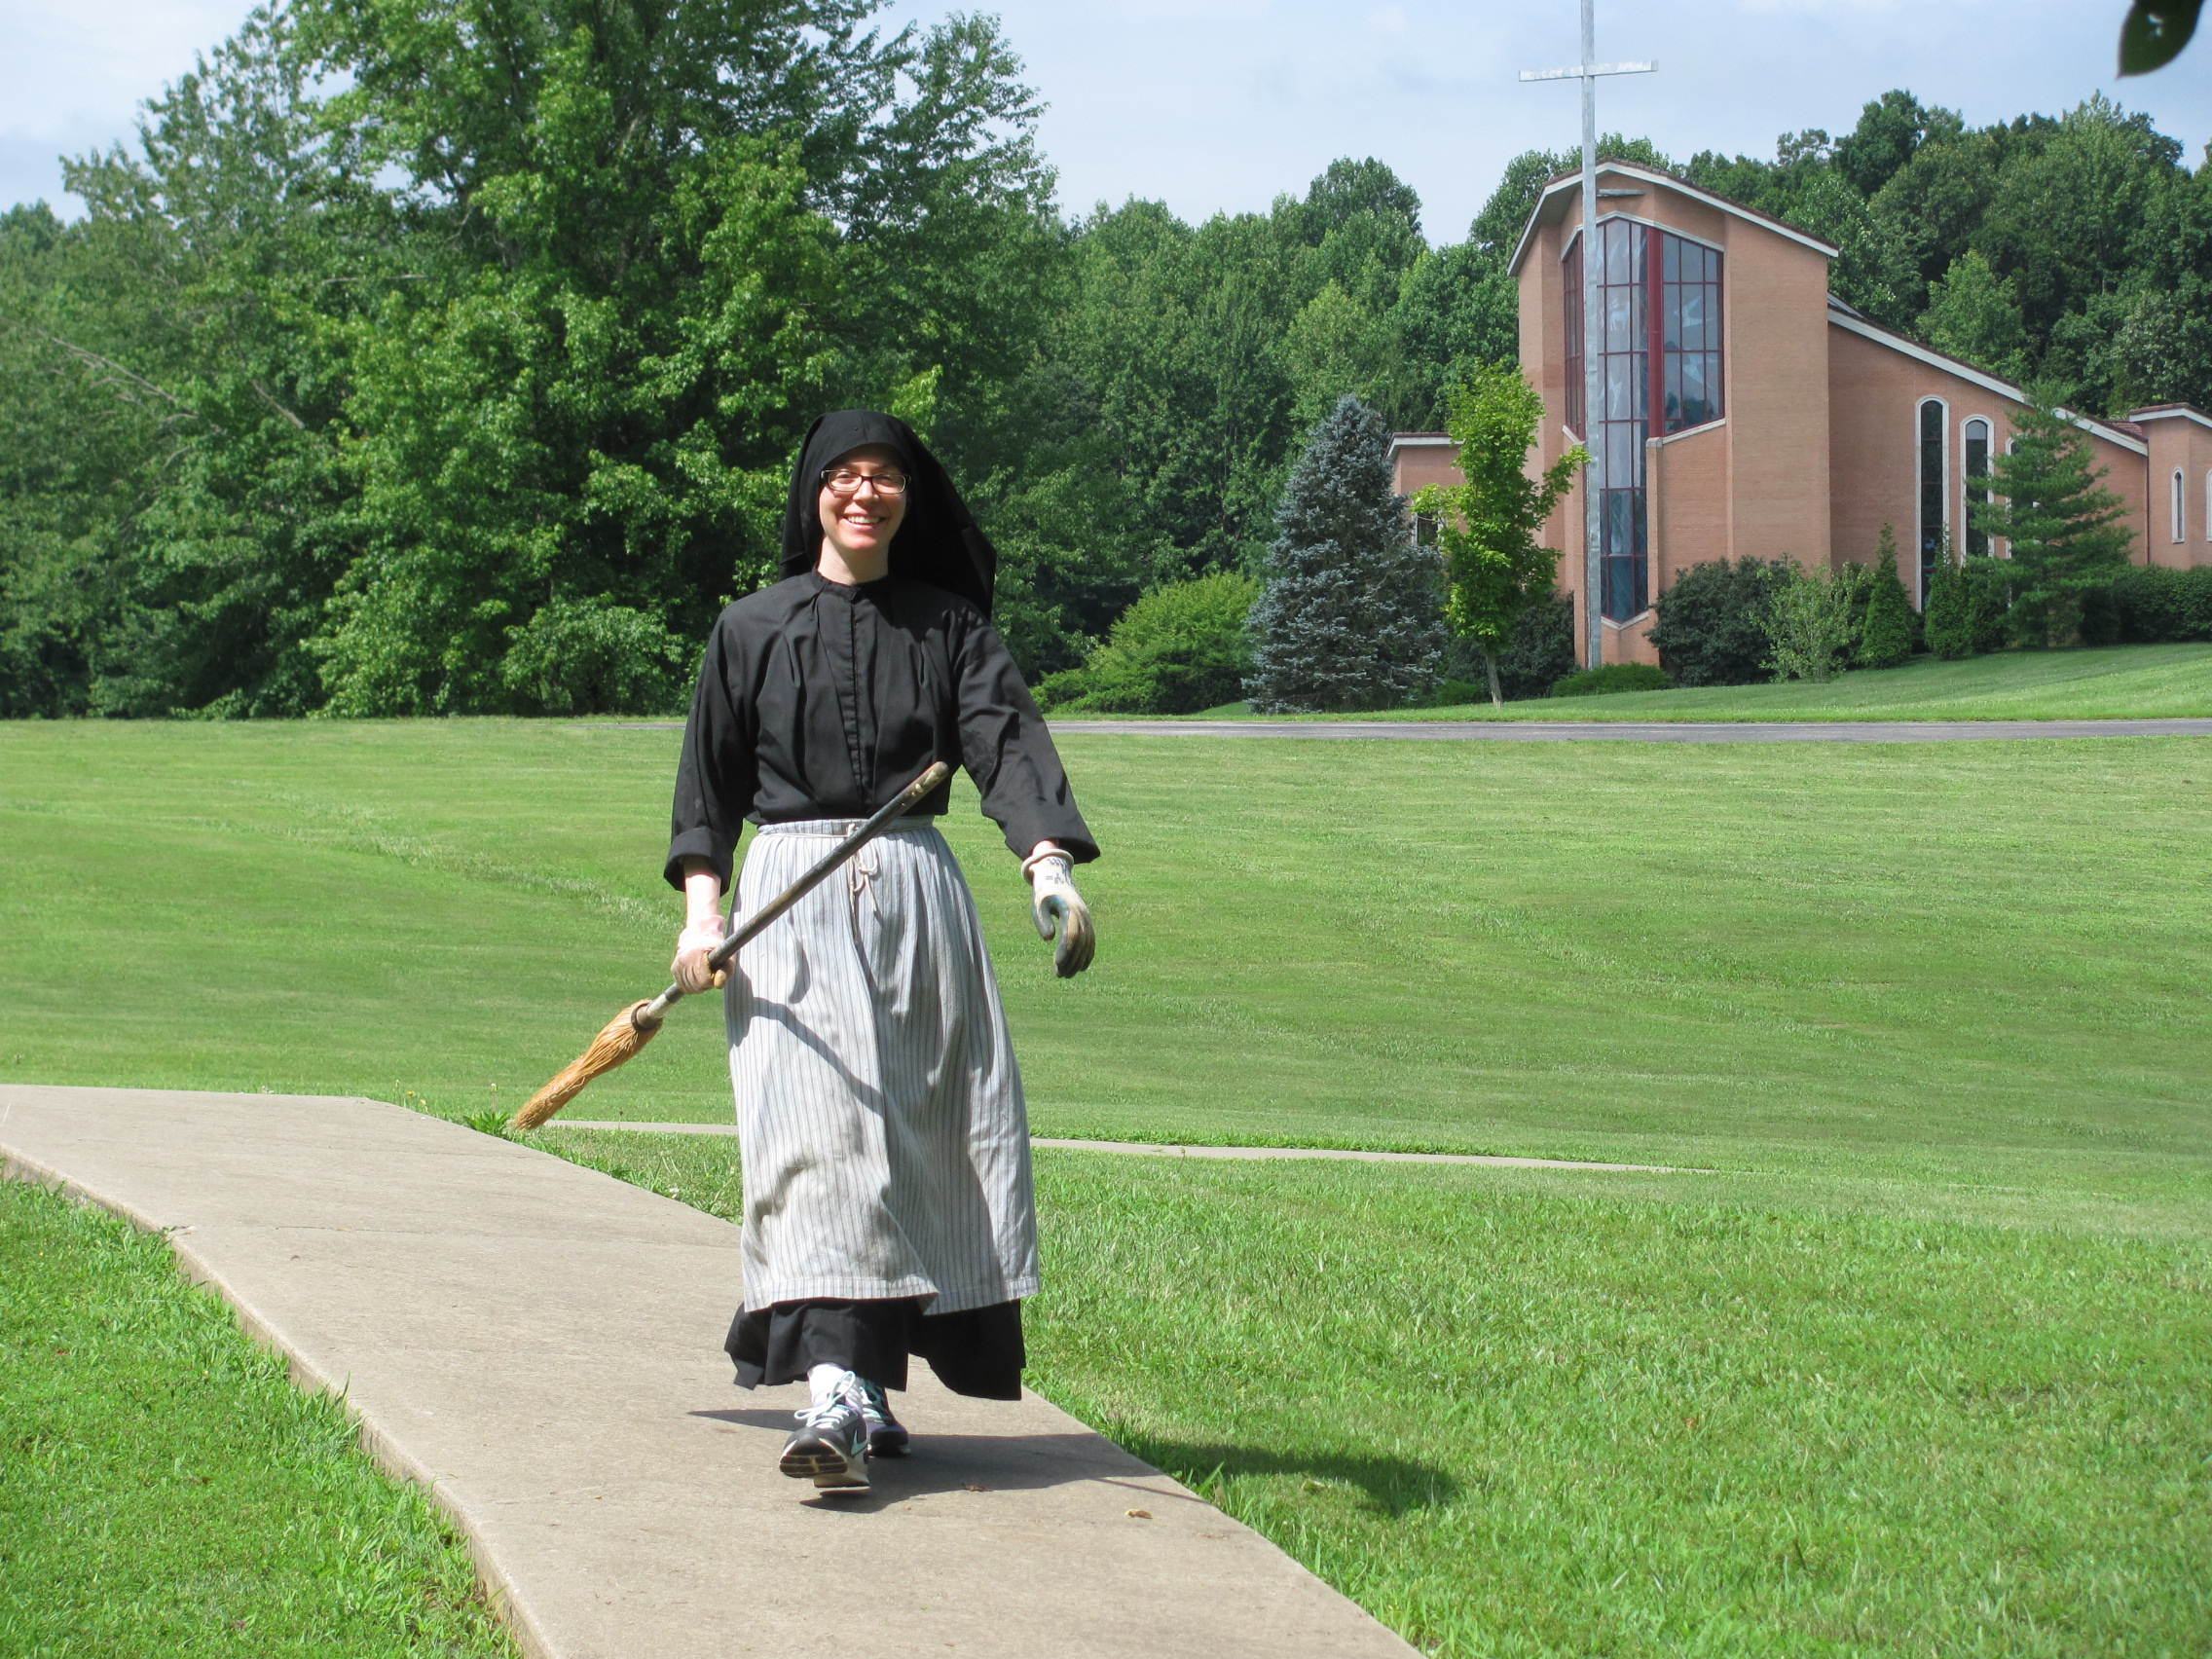 Sr. Maria Faustina is ready for the Weeding Posse Clean-up Crew.